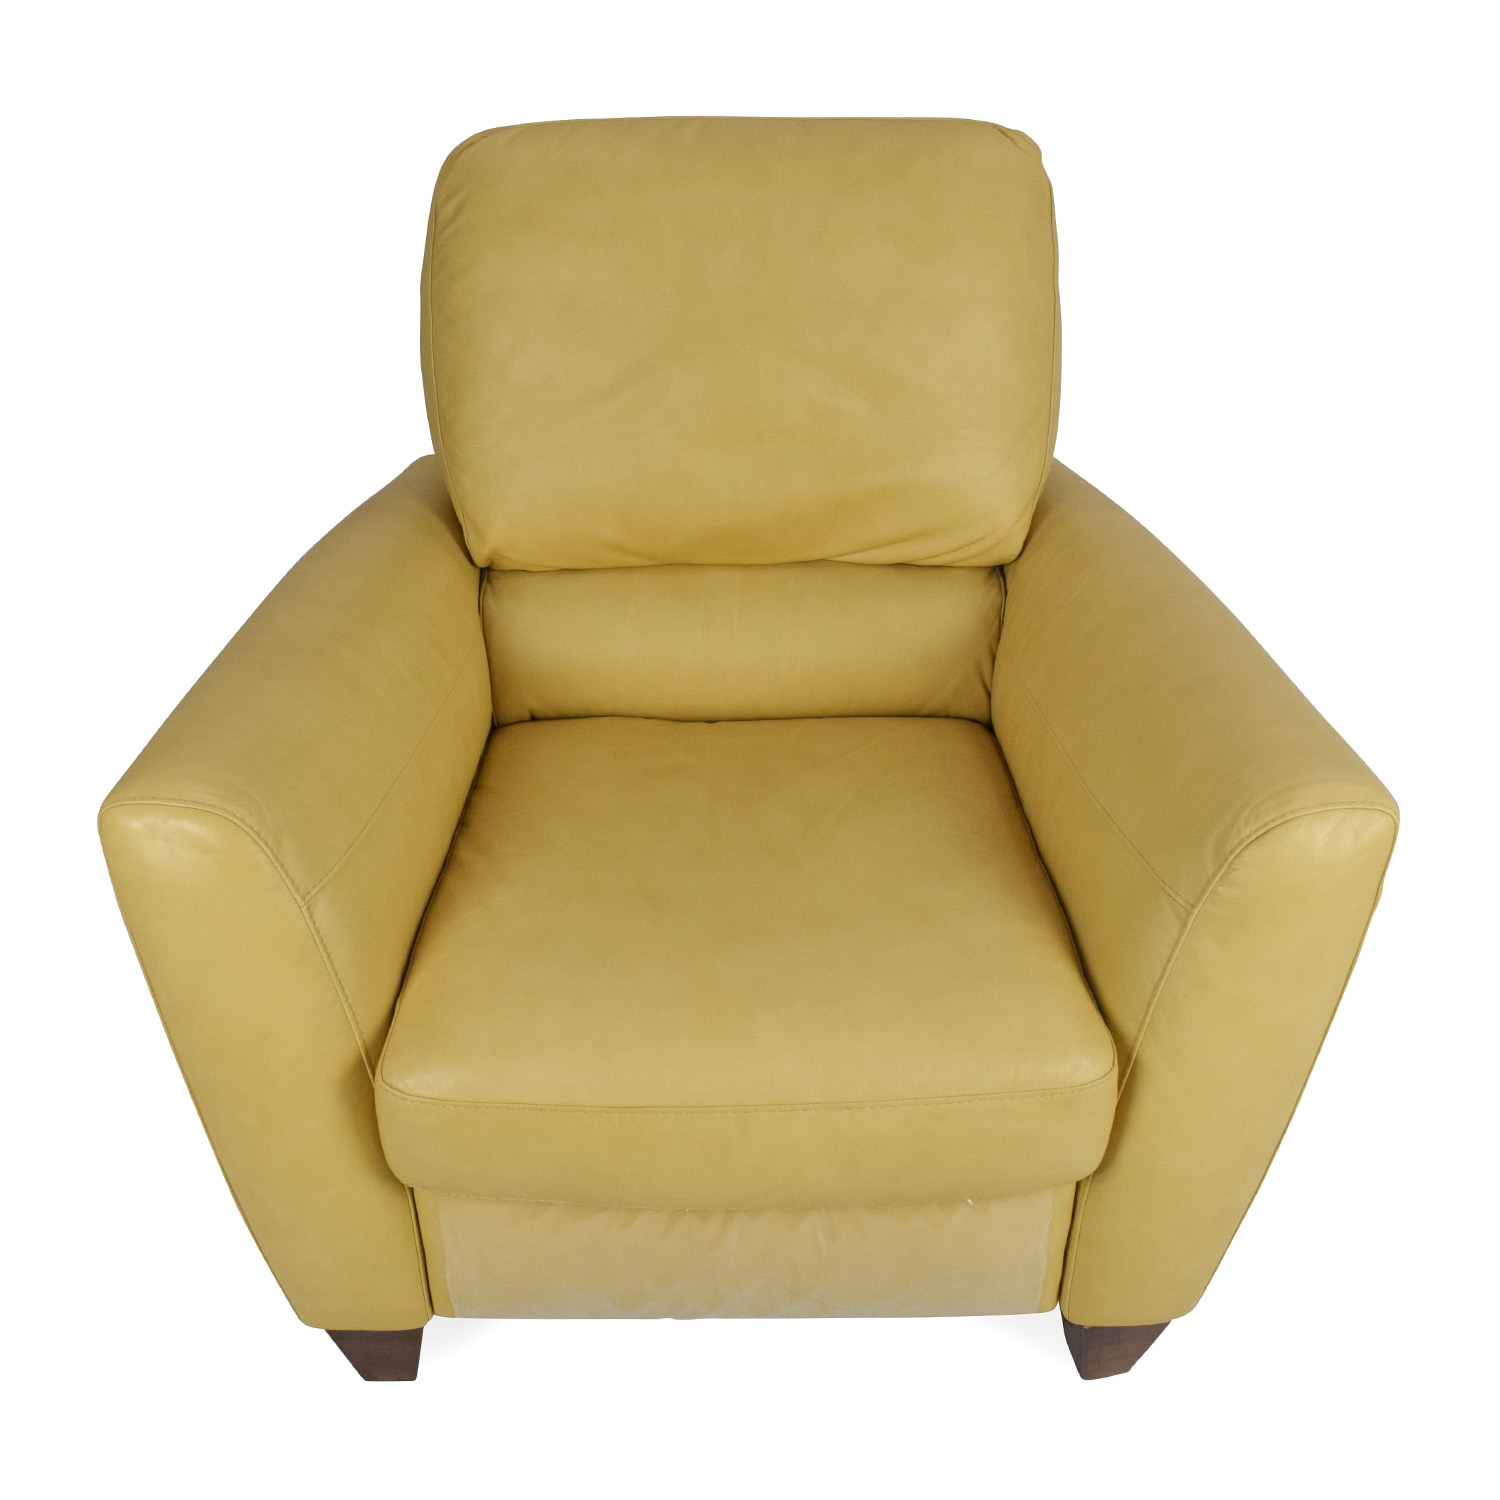 89 off macy s macy s recliner chair chairs